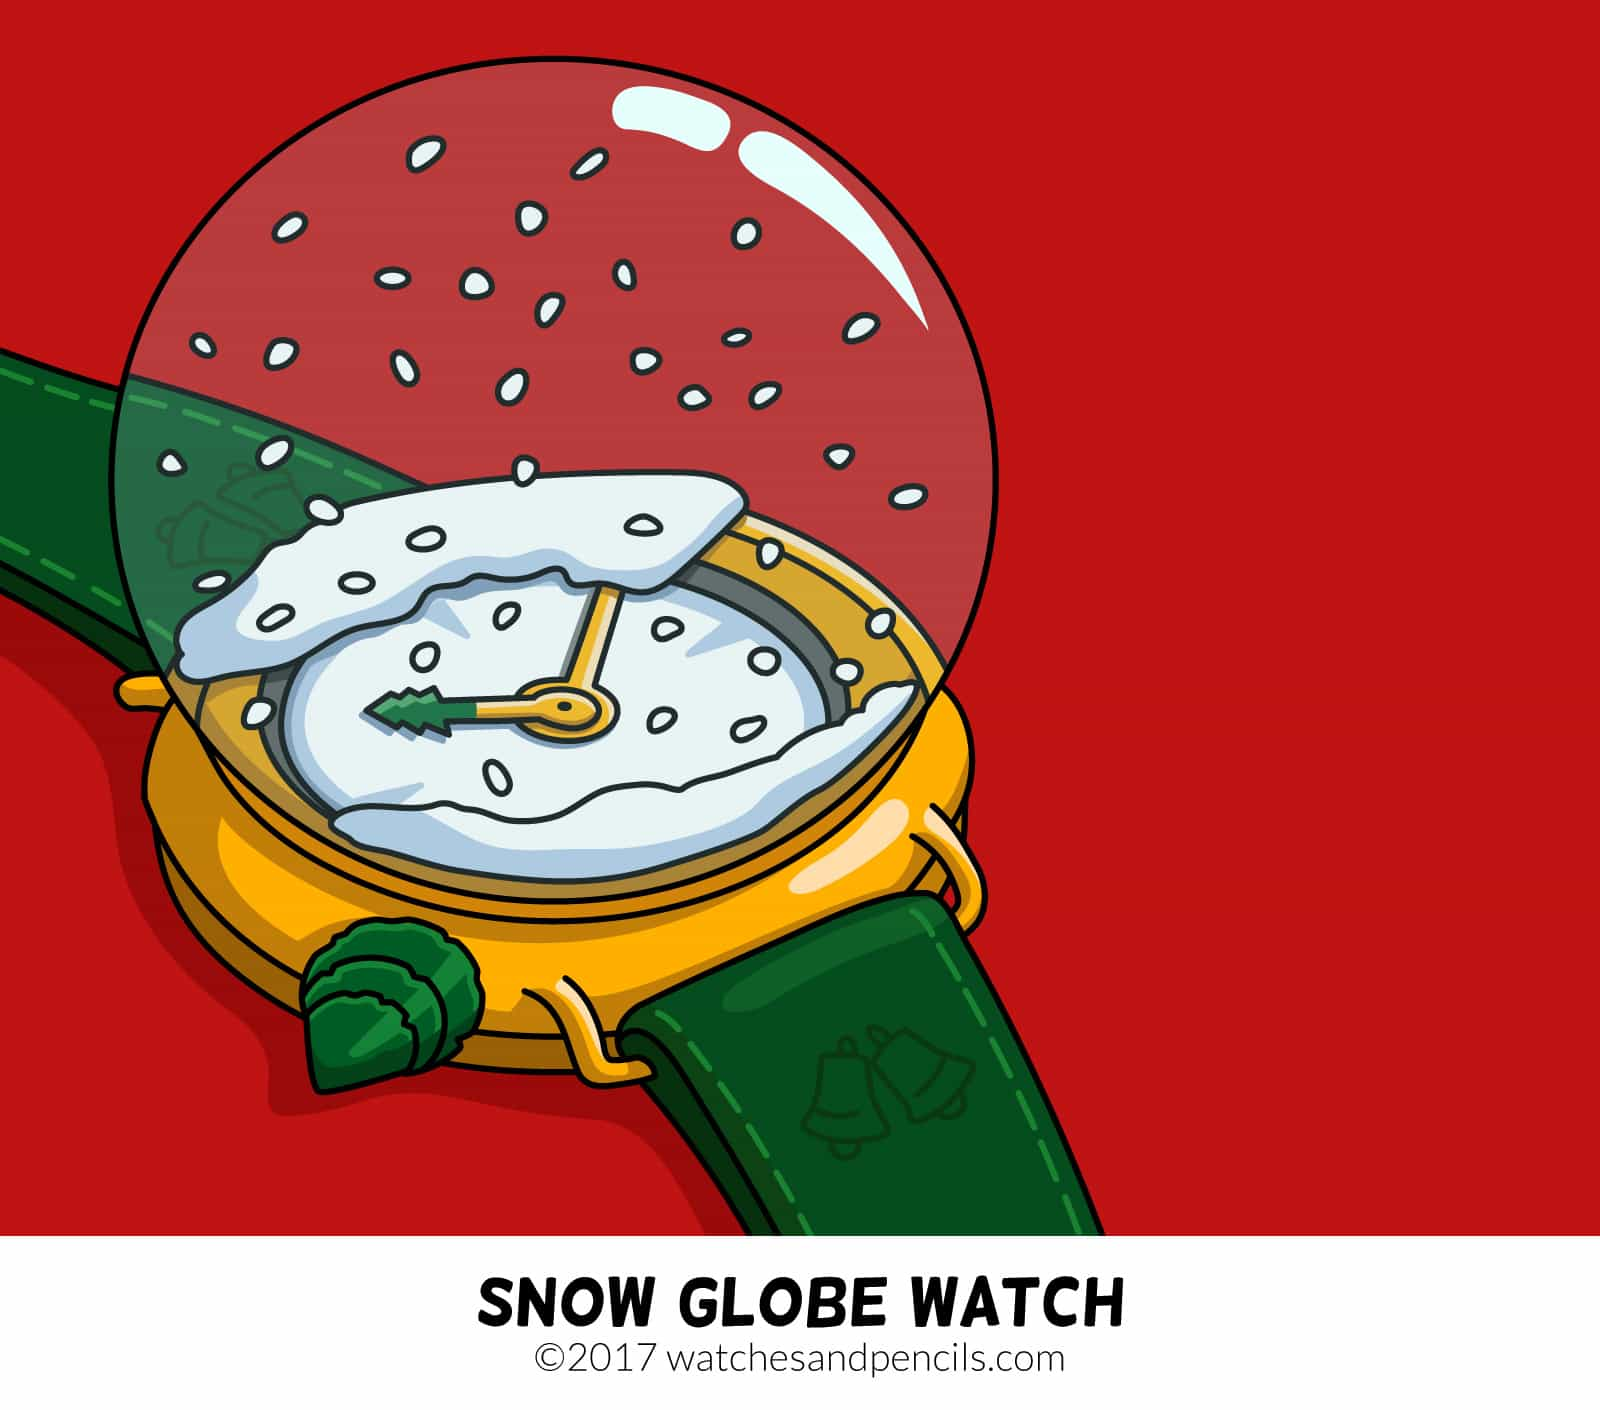 Snow Globe Watch by Watches and Pencils